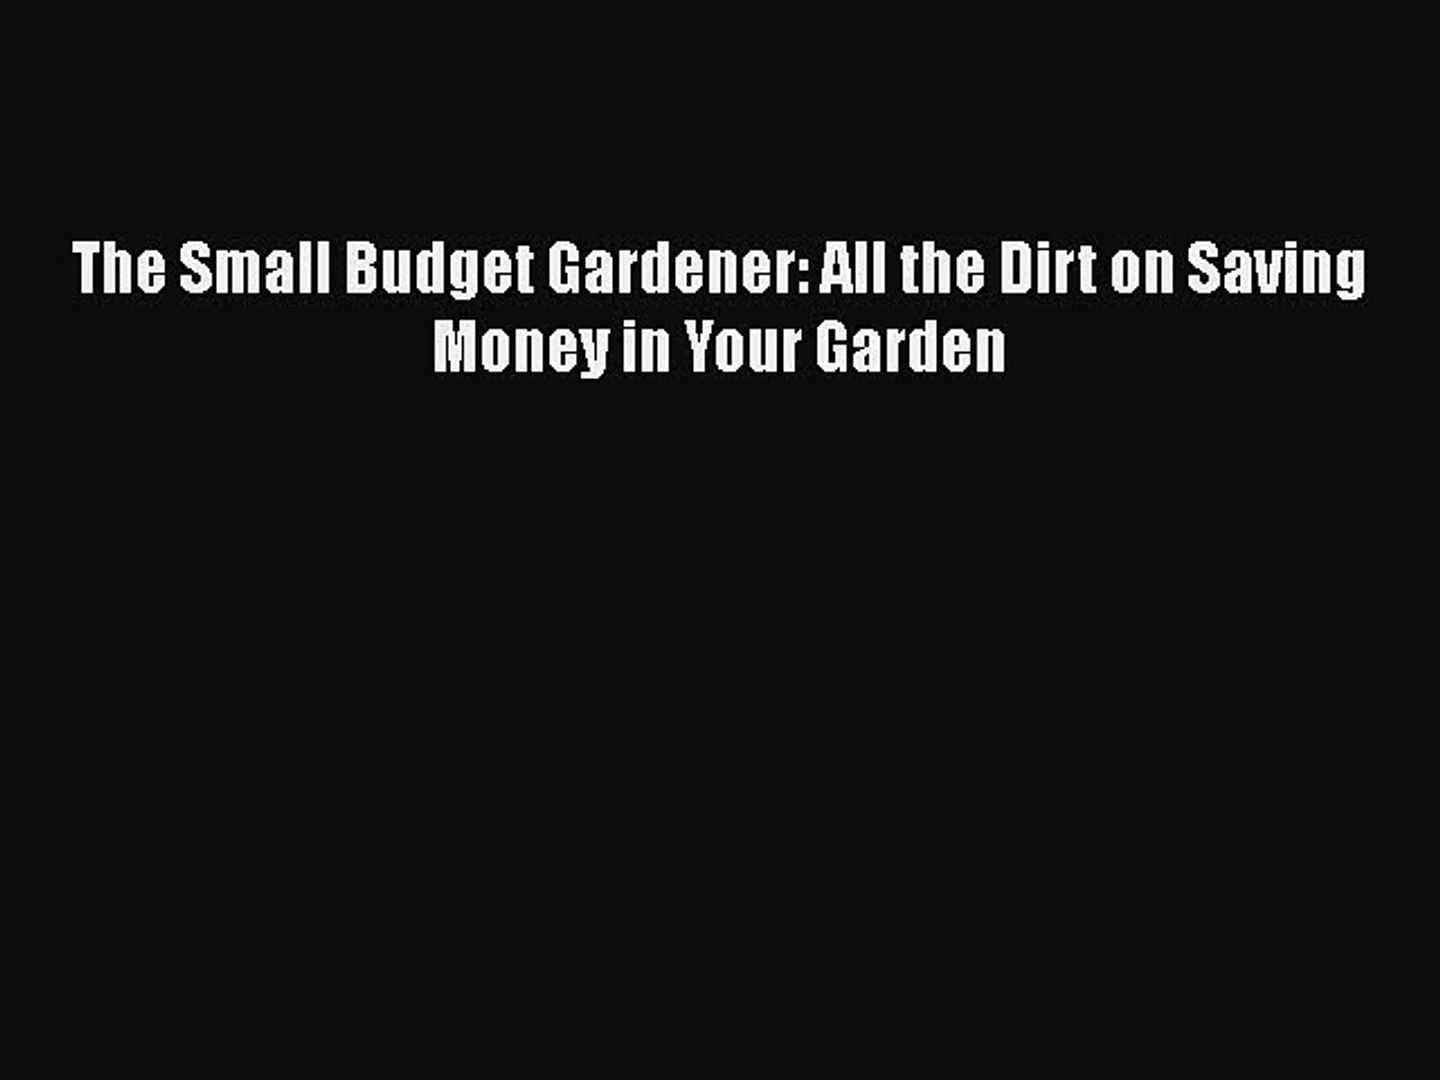 [PDF] The Small Budget Gardener: All the Dirt on Saving Money in Your Garden Read Online